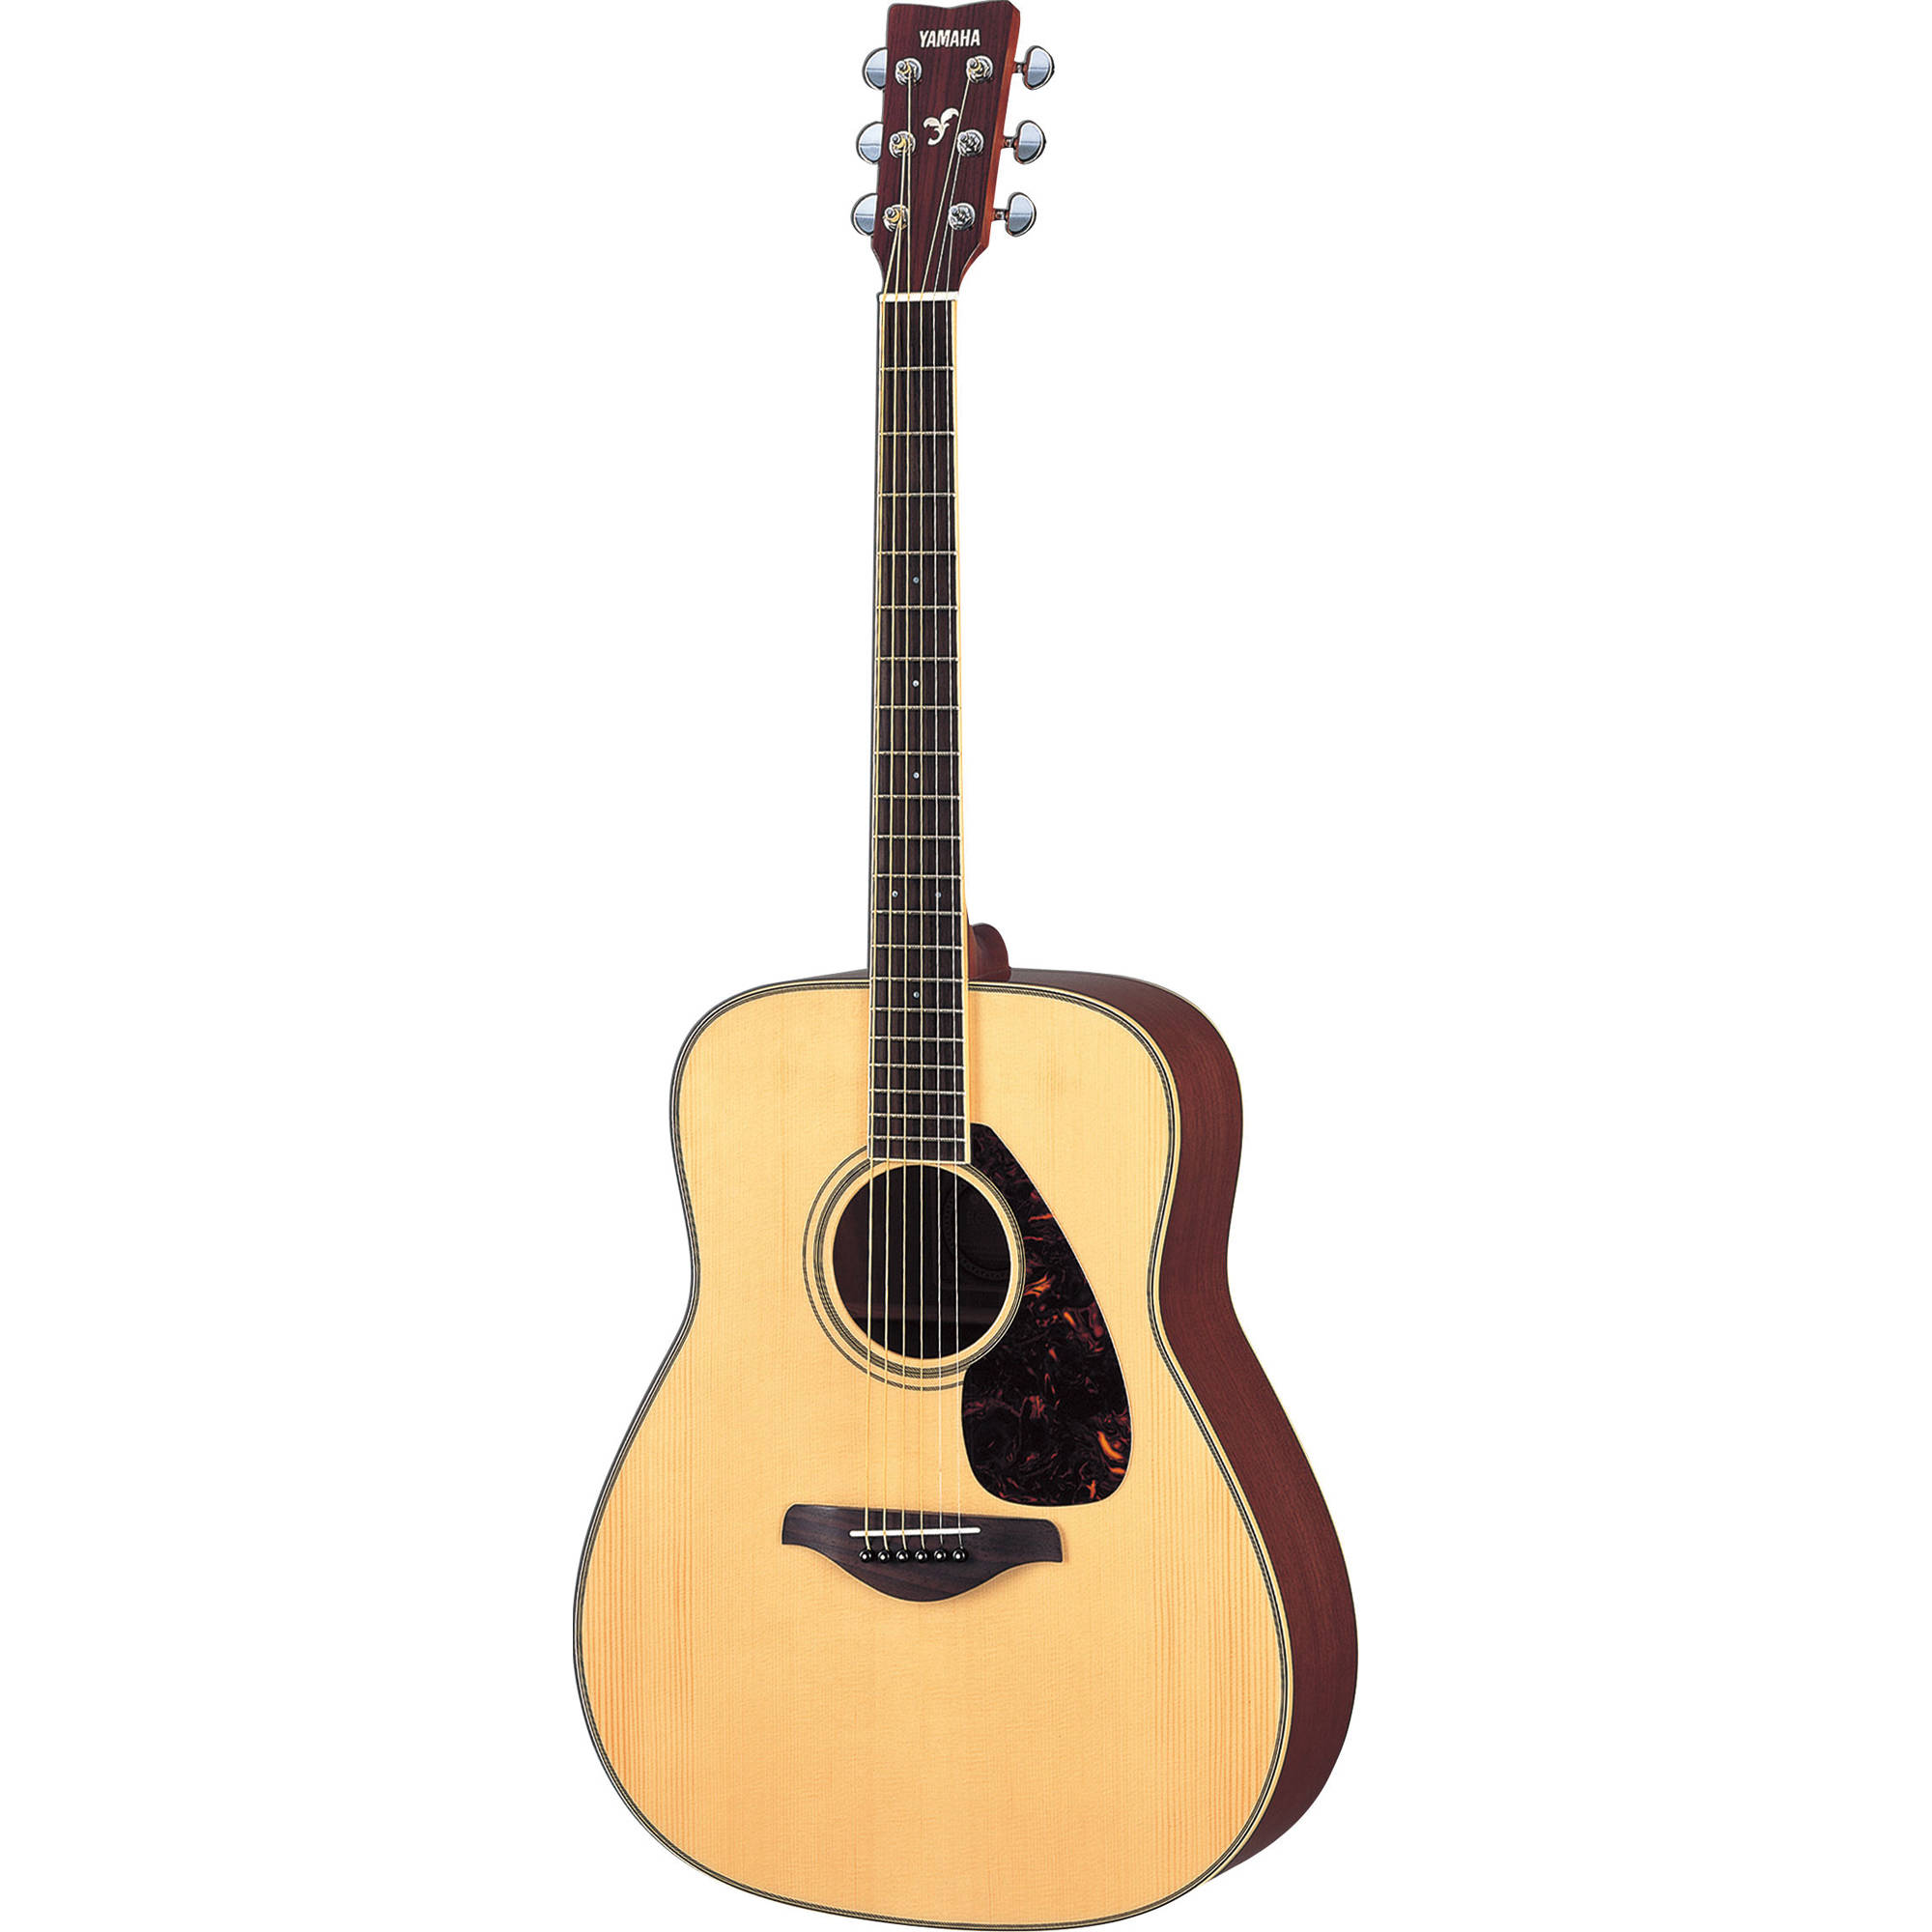 Yamaha Solid Top Acoustic